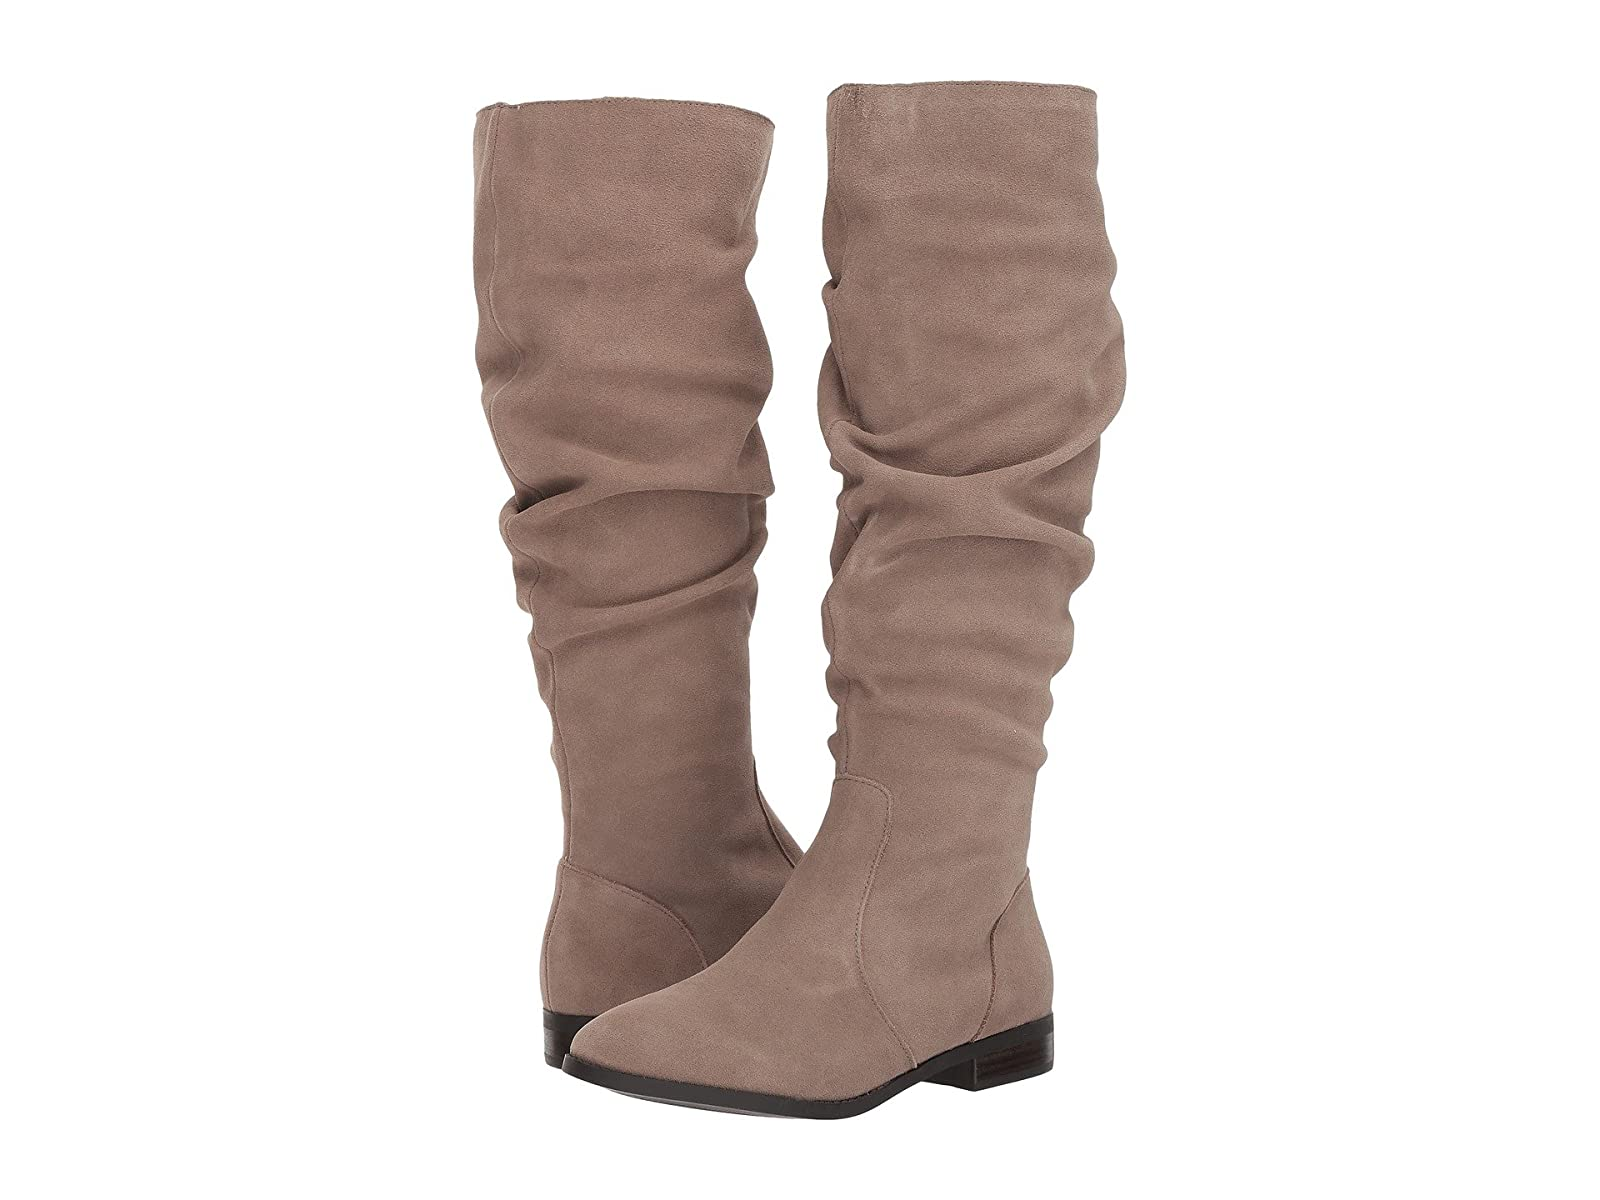 Steve Madden Beacon Slouch BootCheap and distinctive eye-catching shoes